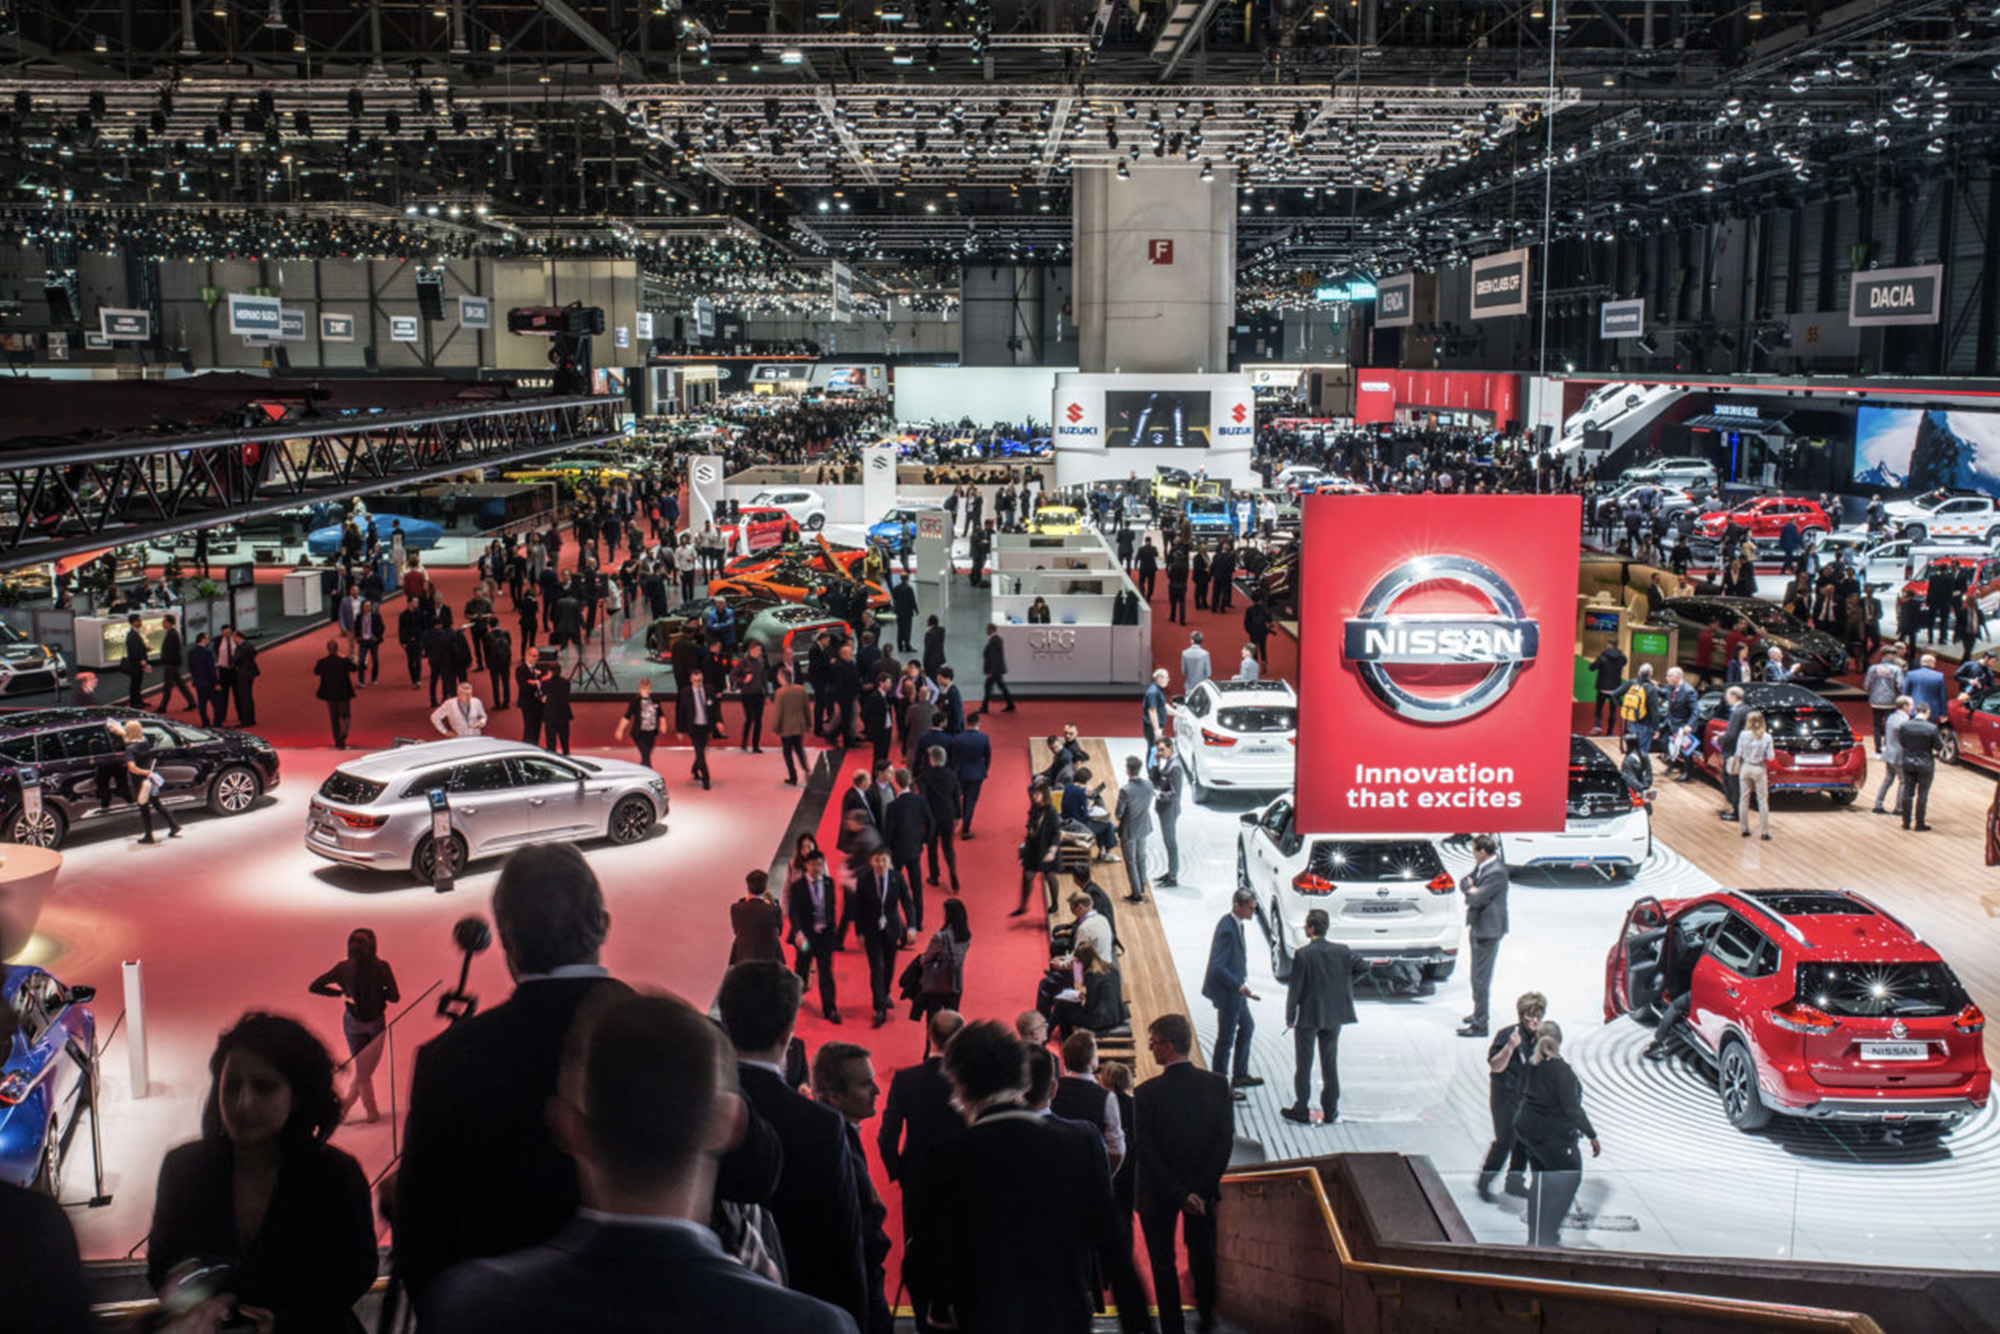 Crowds at the 2019 Geneva Motor Show